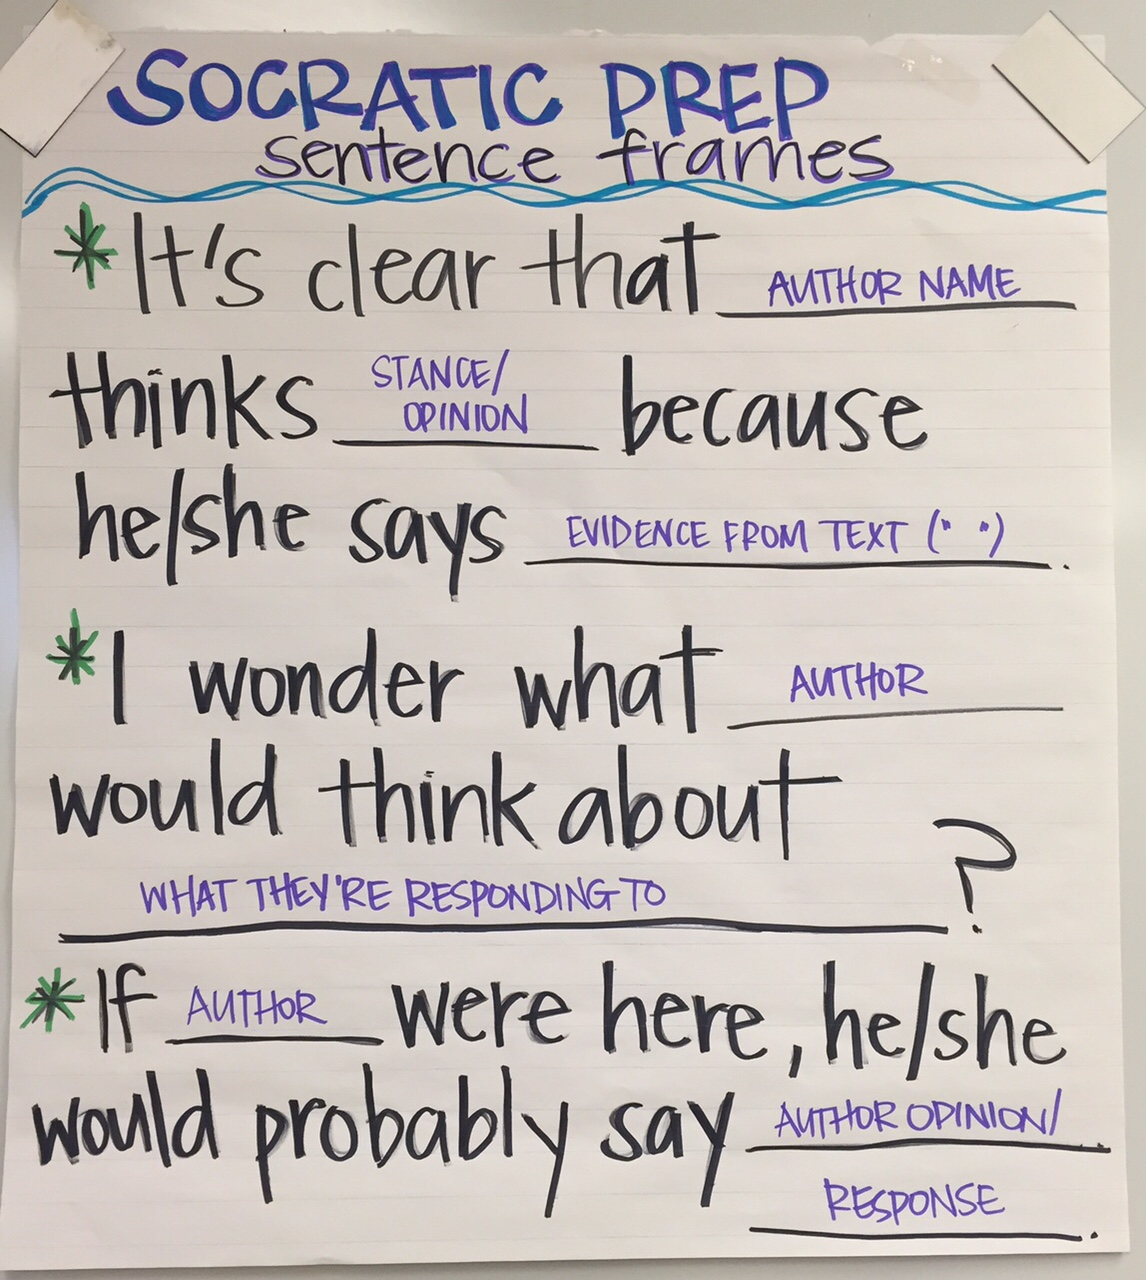 How to Prepare for a Socratic Seminar How to Prepare for a Socratic Seminar new pics